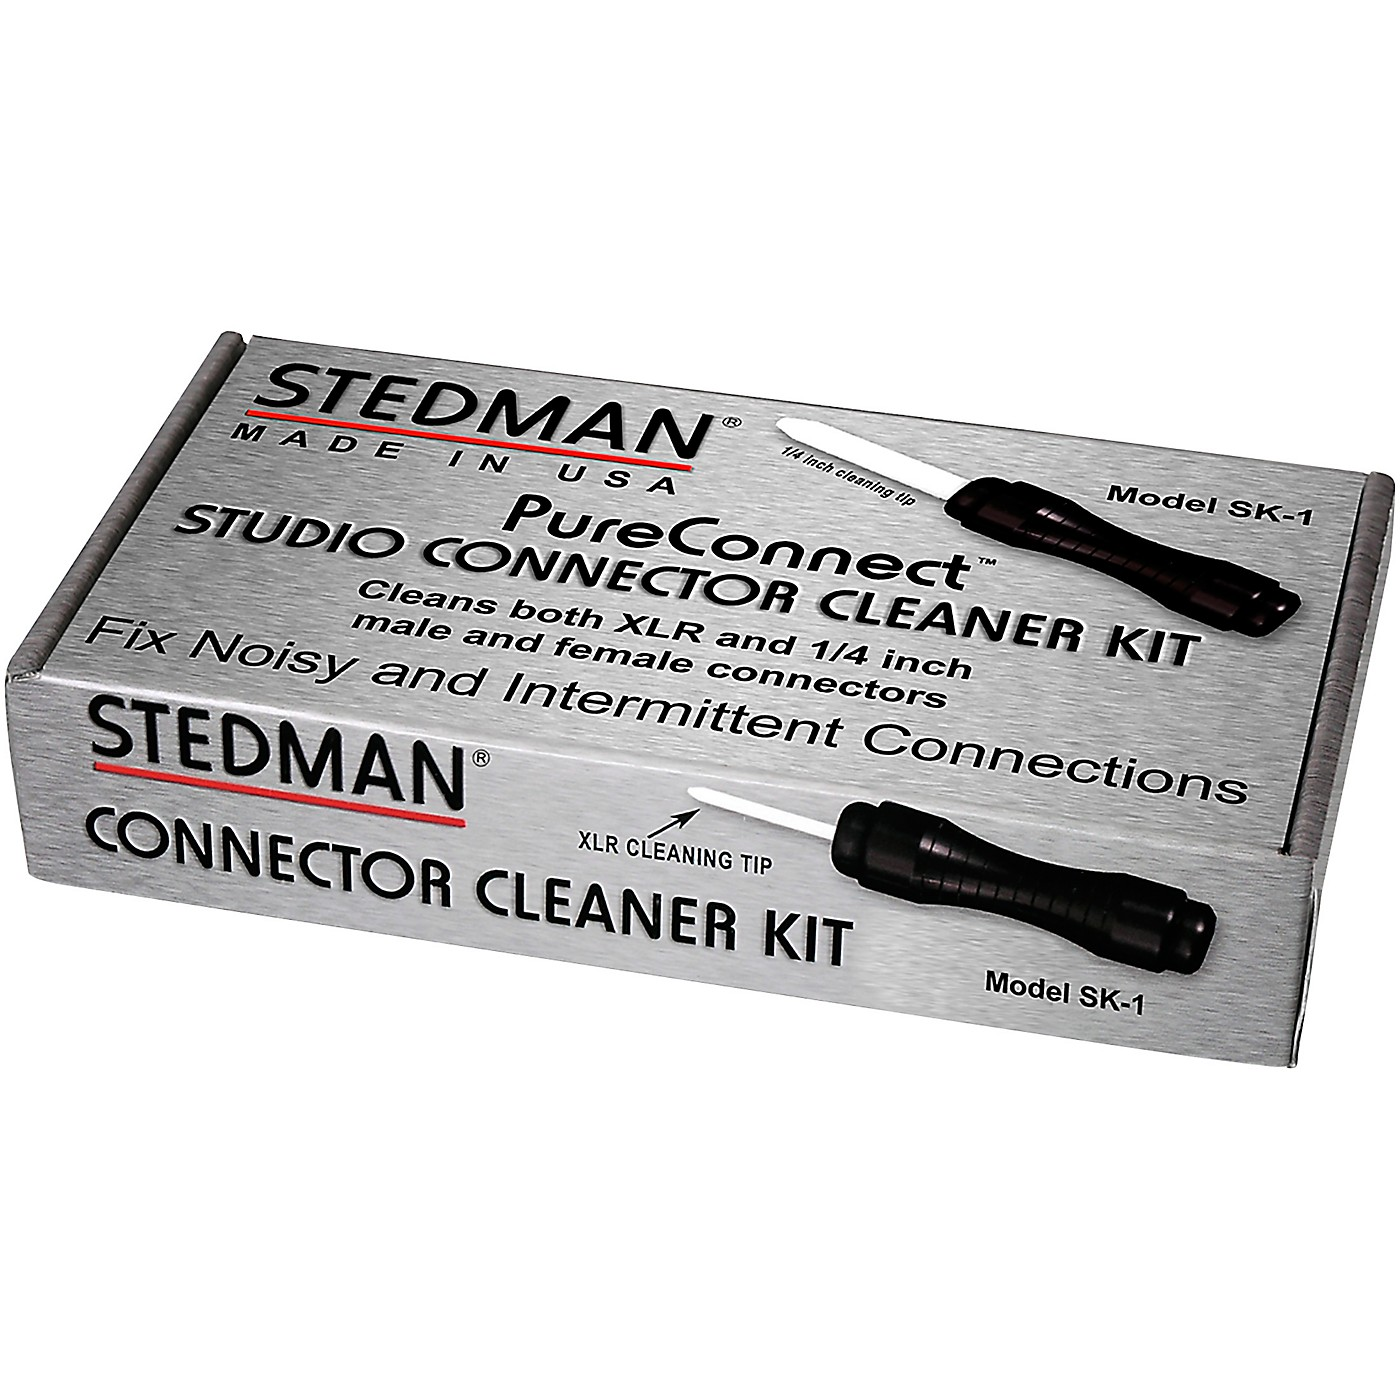 Stedman PureConnect Studio Connector Cleaner Kit thumbnail